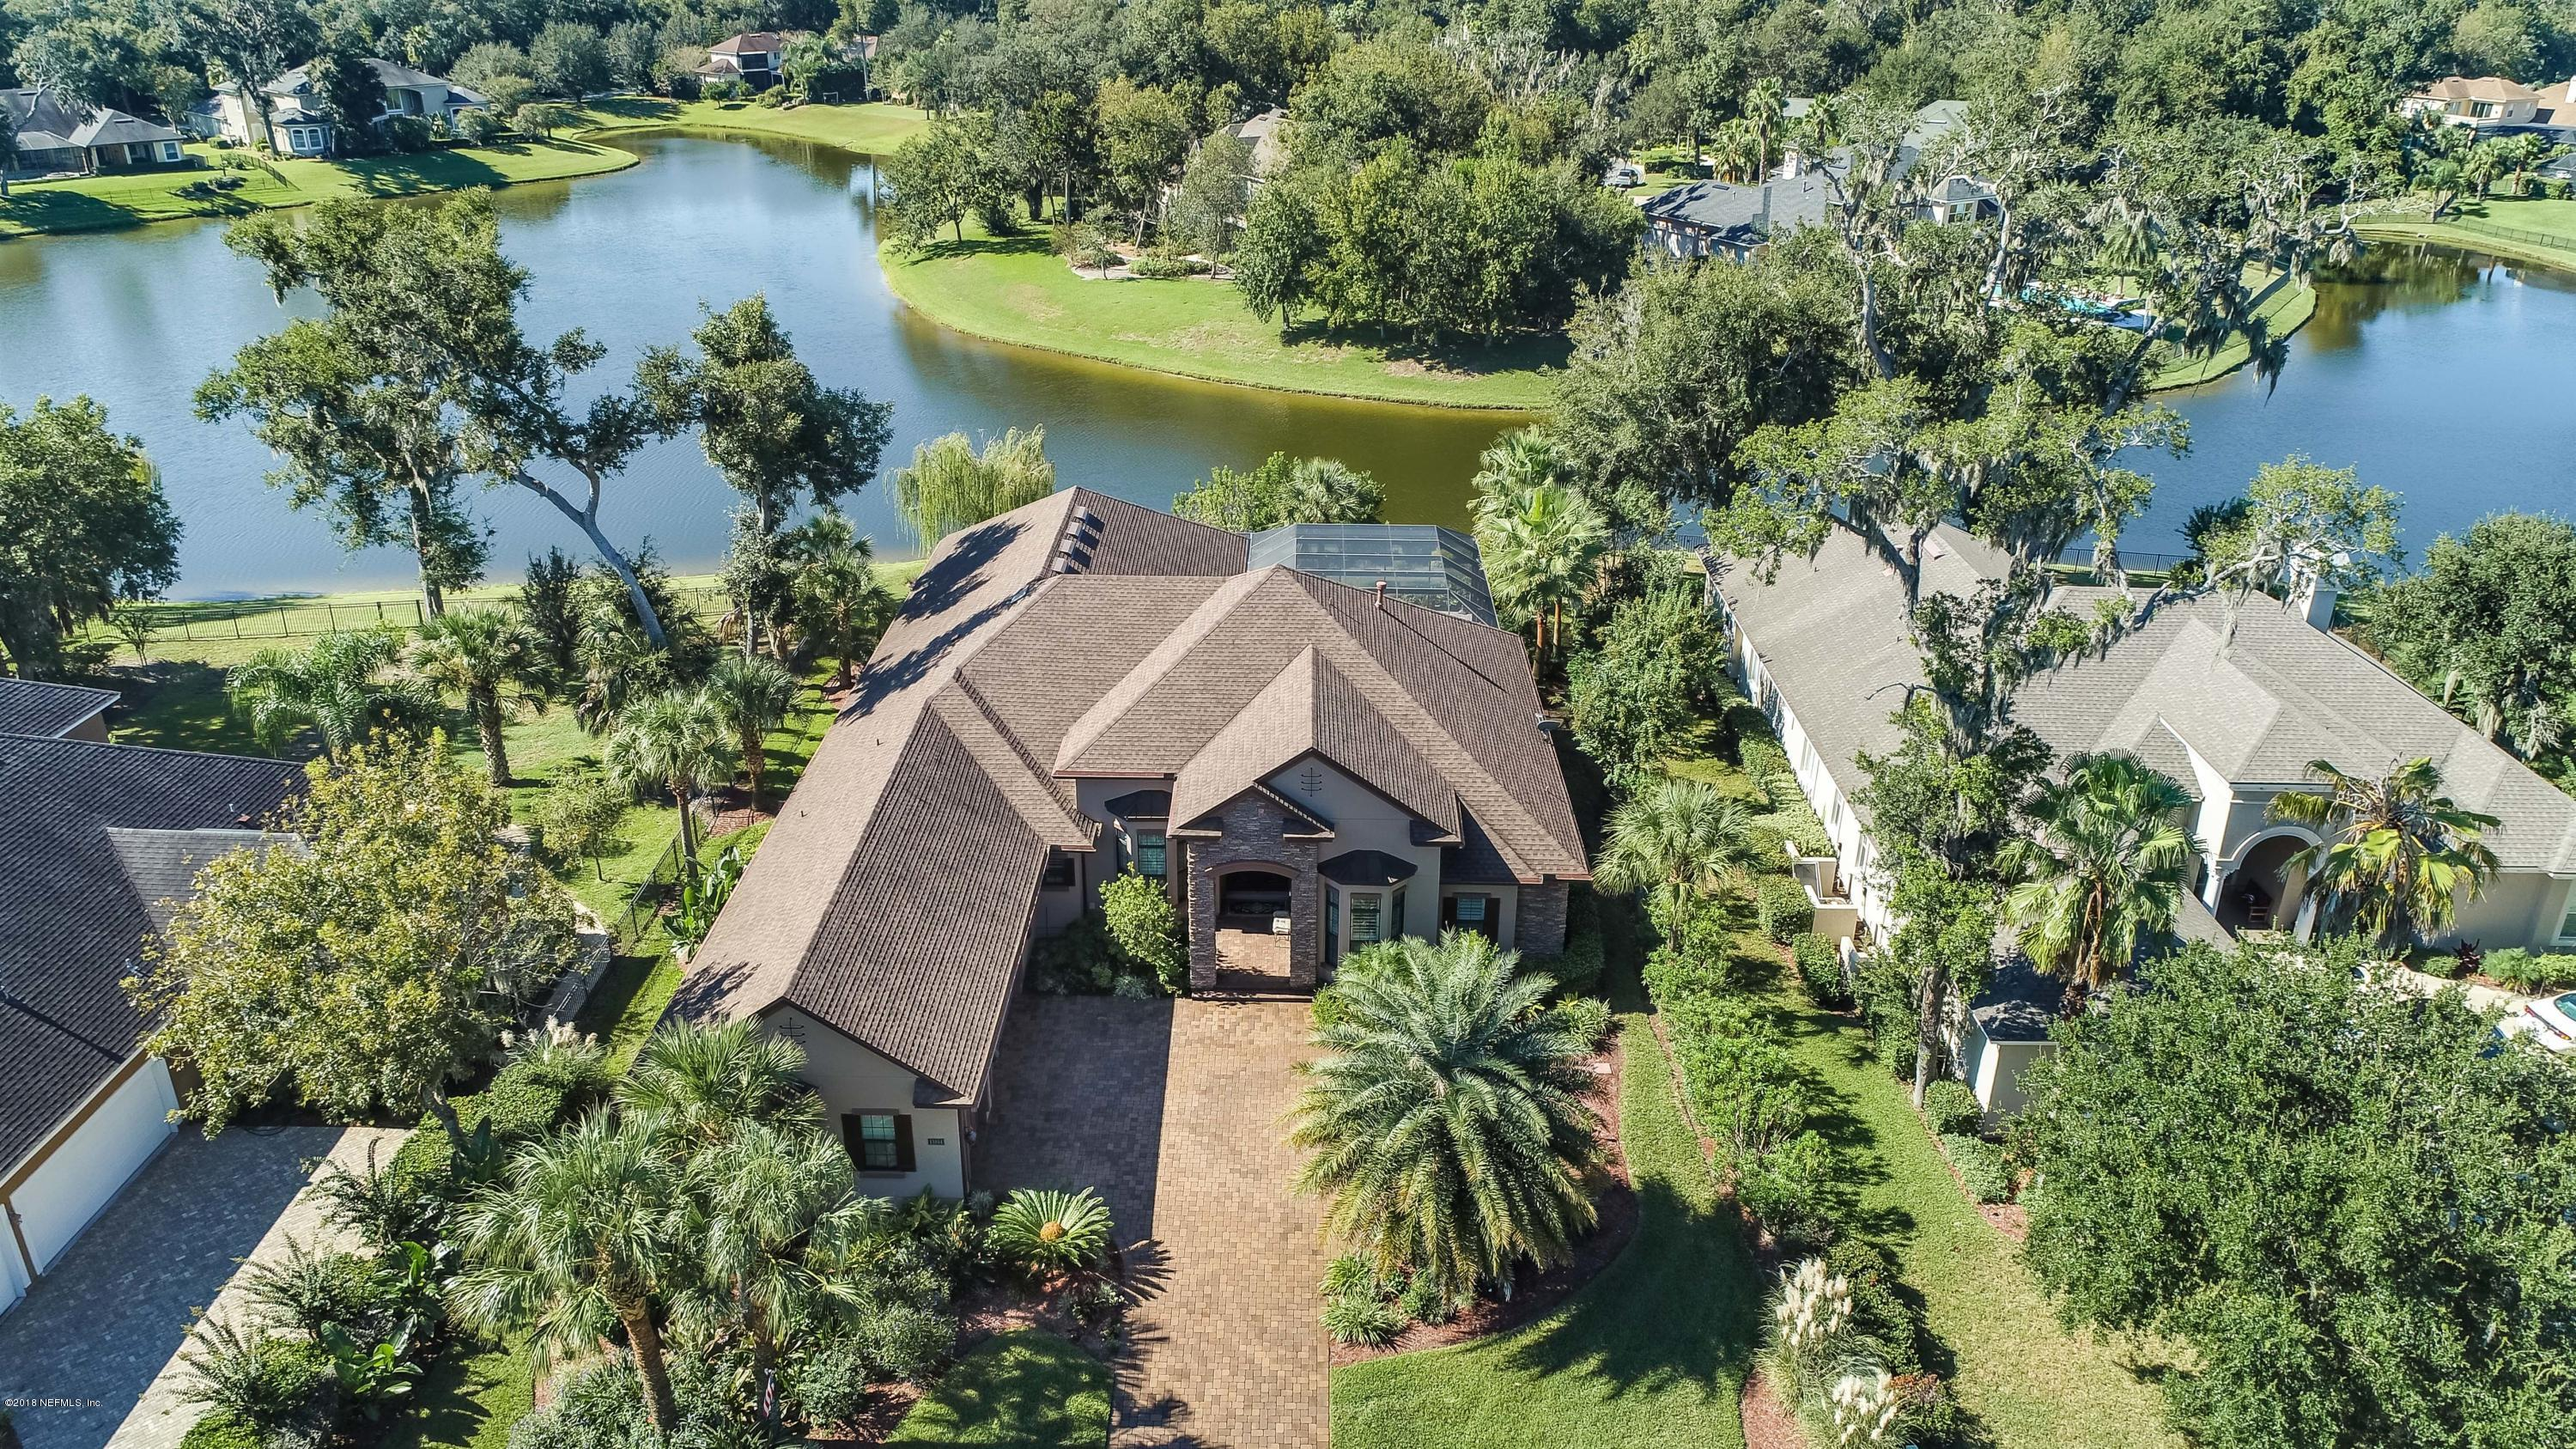 13814 SAXON LAKE, JACKSONVILLE, FLORIDA 32225, 4 Bedrooms Bedrooms, ,4 BathroomsBathrooms,Residential - single family,For sale,SAXON LAKE,962629